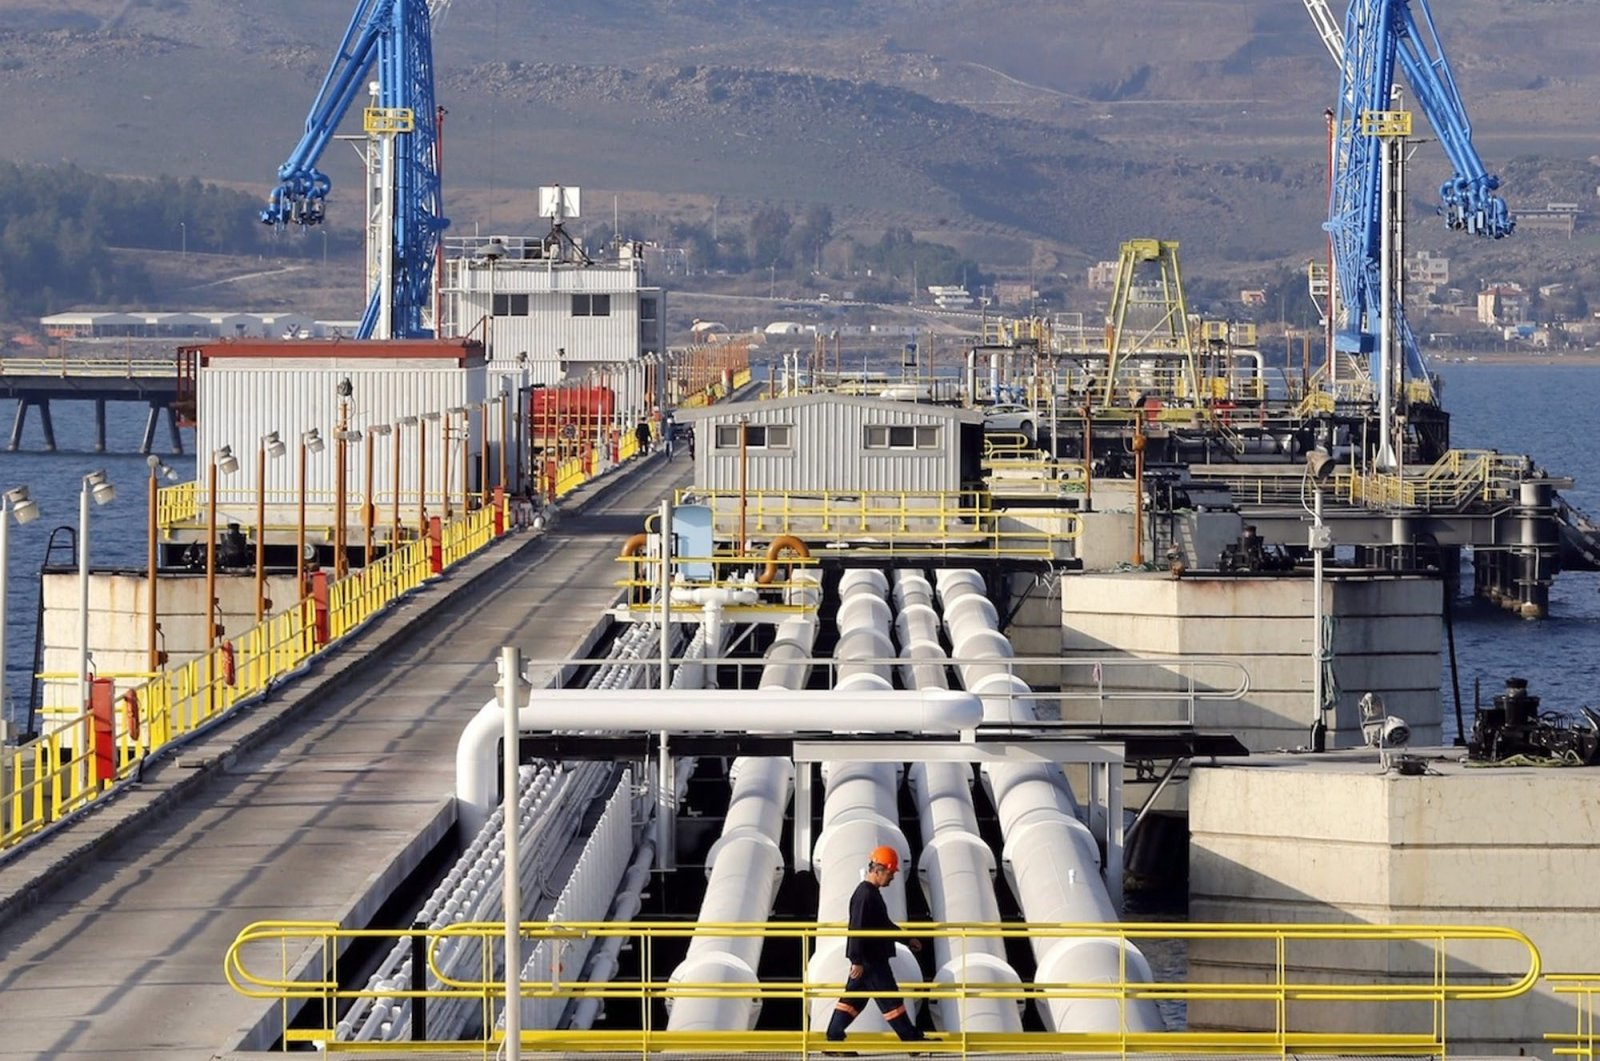 A view at Turkey's Mediterranean port of Ceyhan, which is run by state-owned Petroleum Pipeline Corporation (BOTAŞ), some 70 kilometers (43.5 miles) from southern Adana province, Turkey, Feb. 19, 2014. (Reuters Photo)